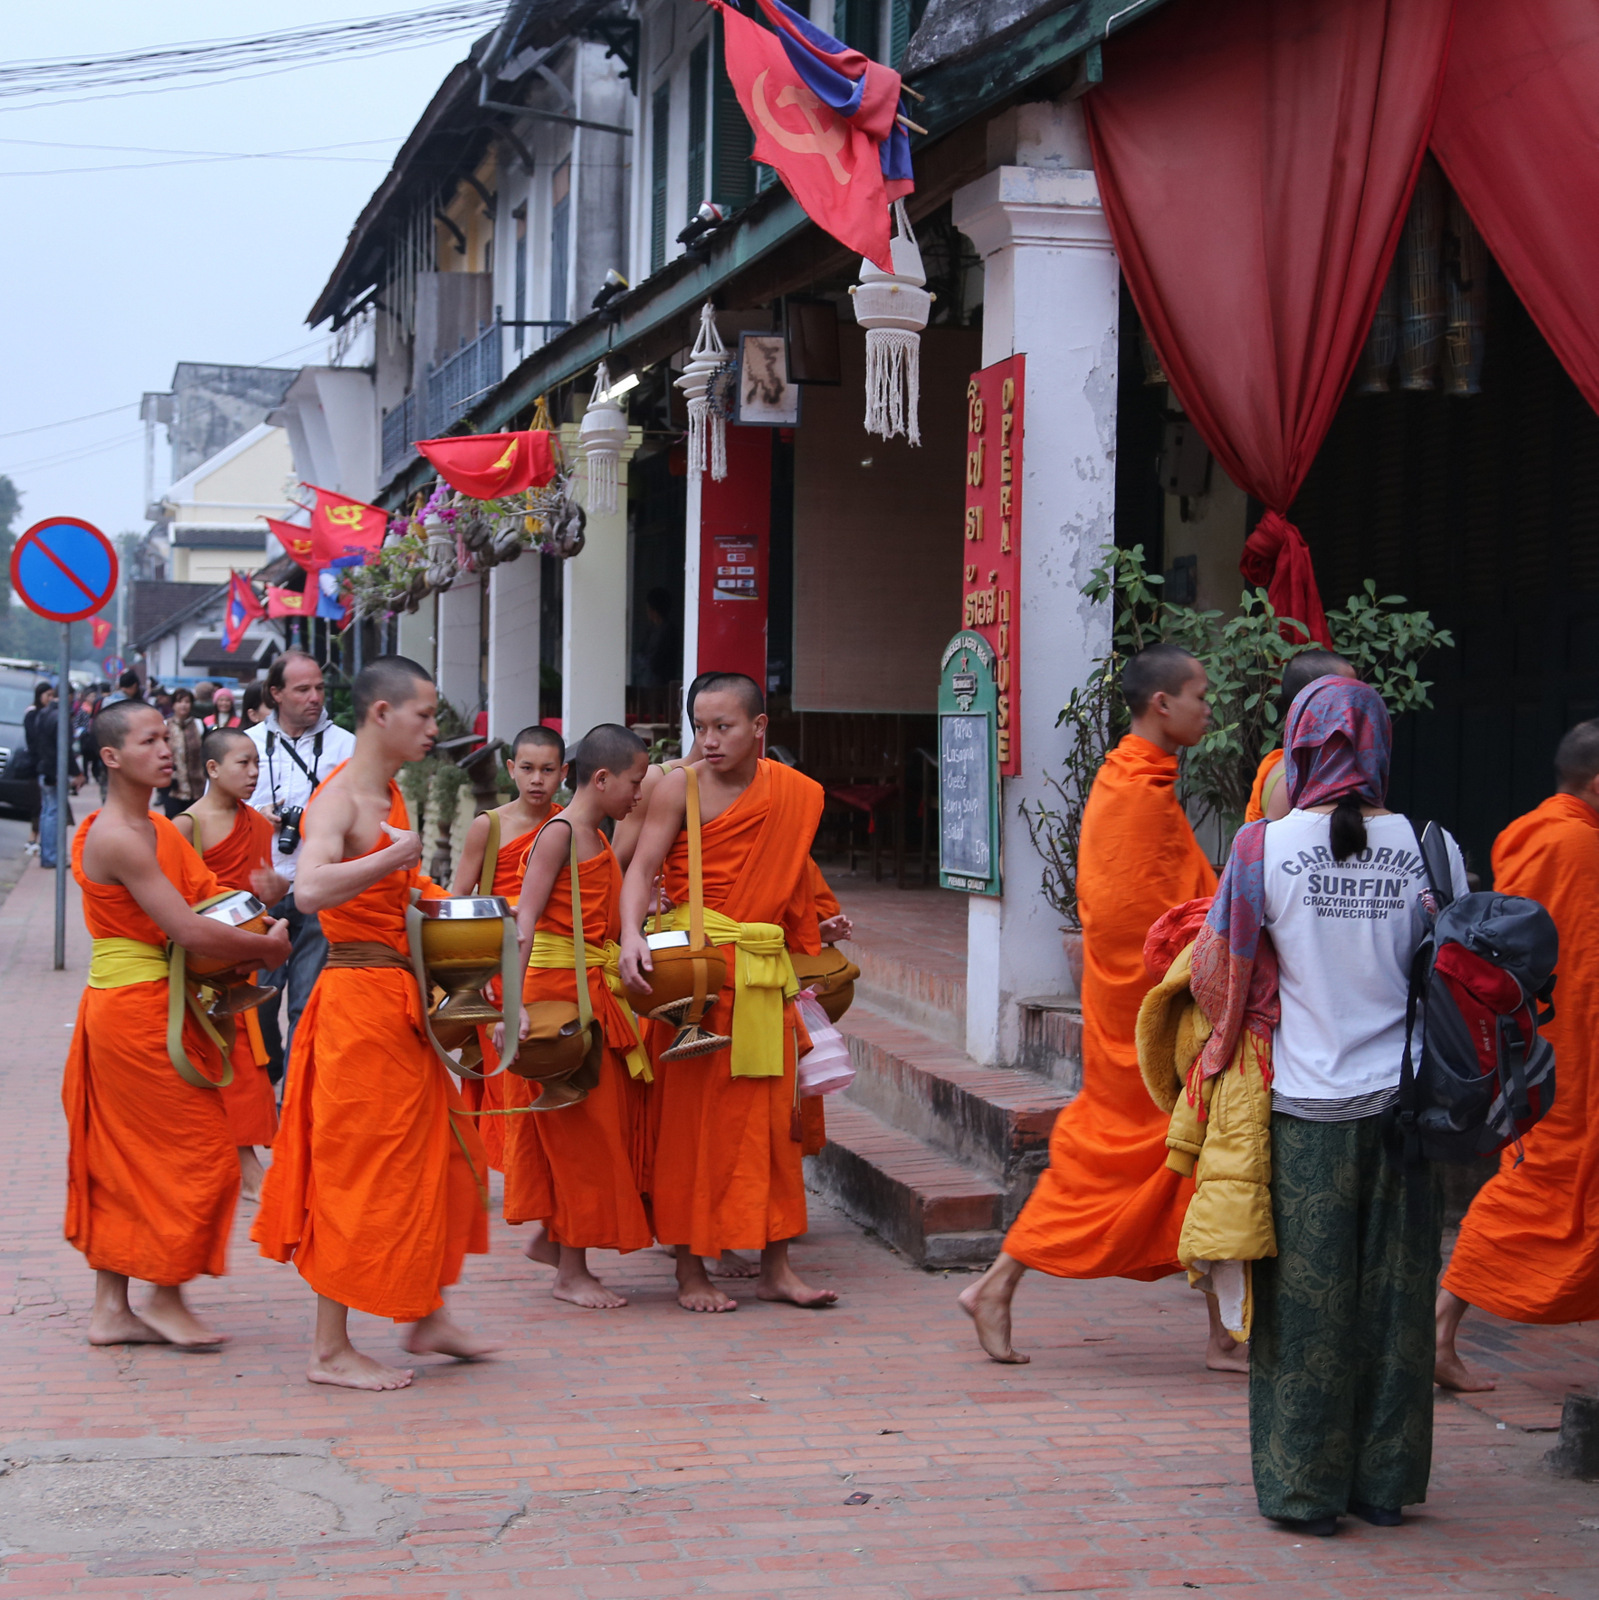 Buddhist and Communist ideals seem to live peacefully side by side in Laos...